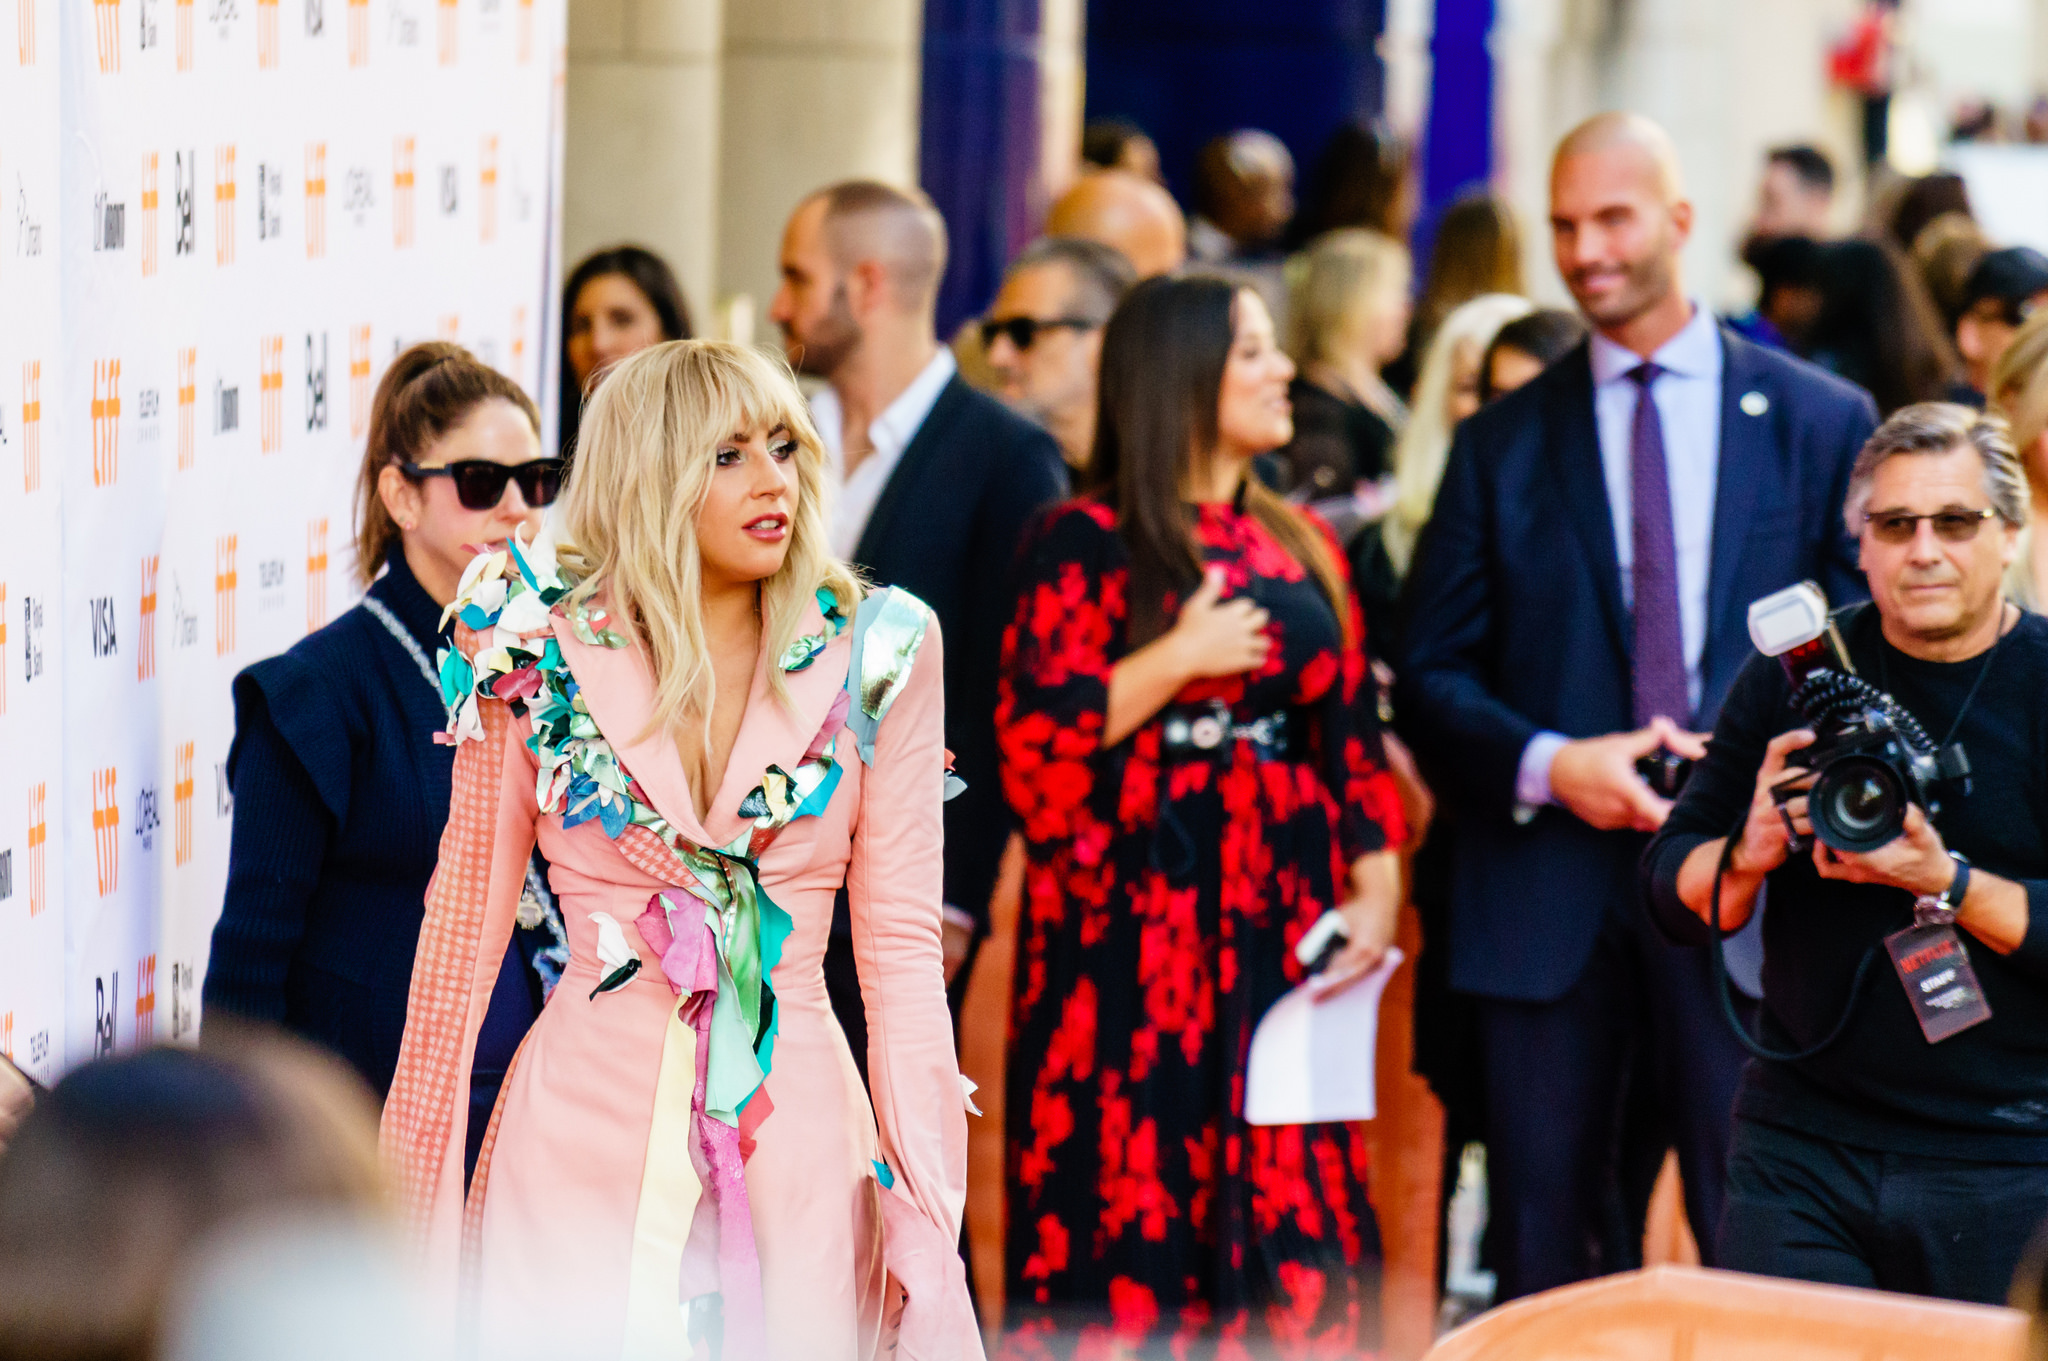 An image of Lady Gaga and other people at TIFF on King Street West.